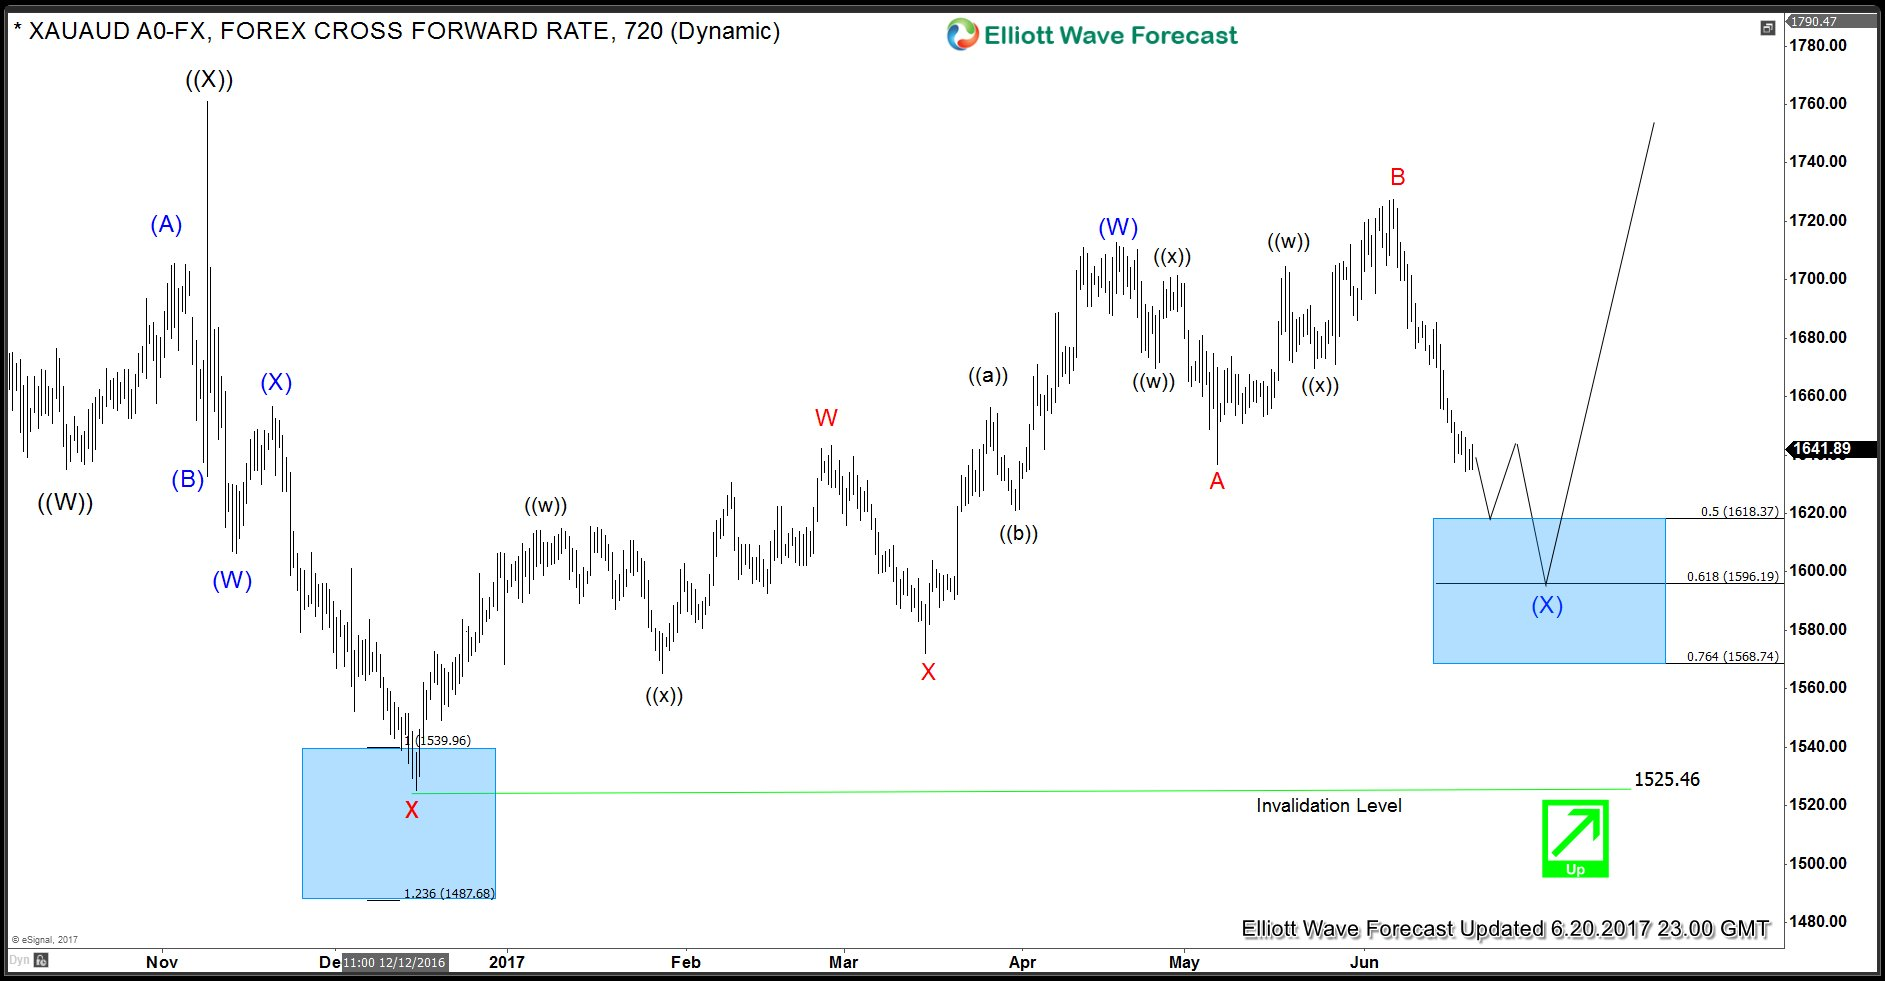 XAUAUD Daily Elliott Wave Analysis ALT view 6.20.2017